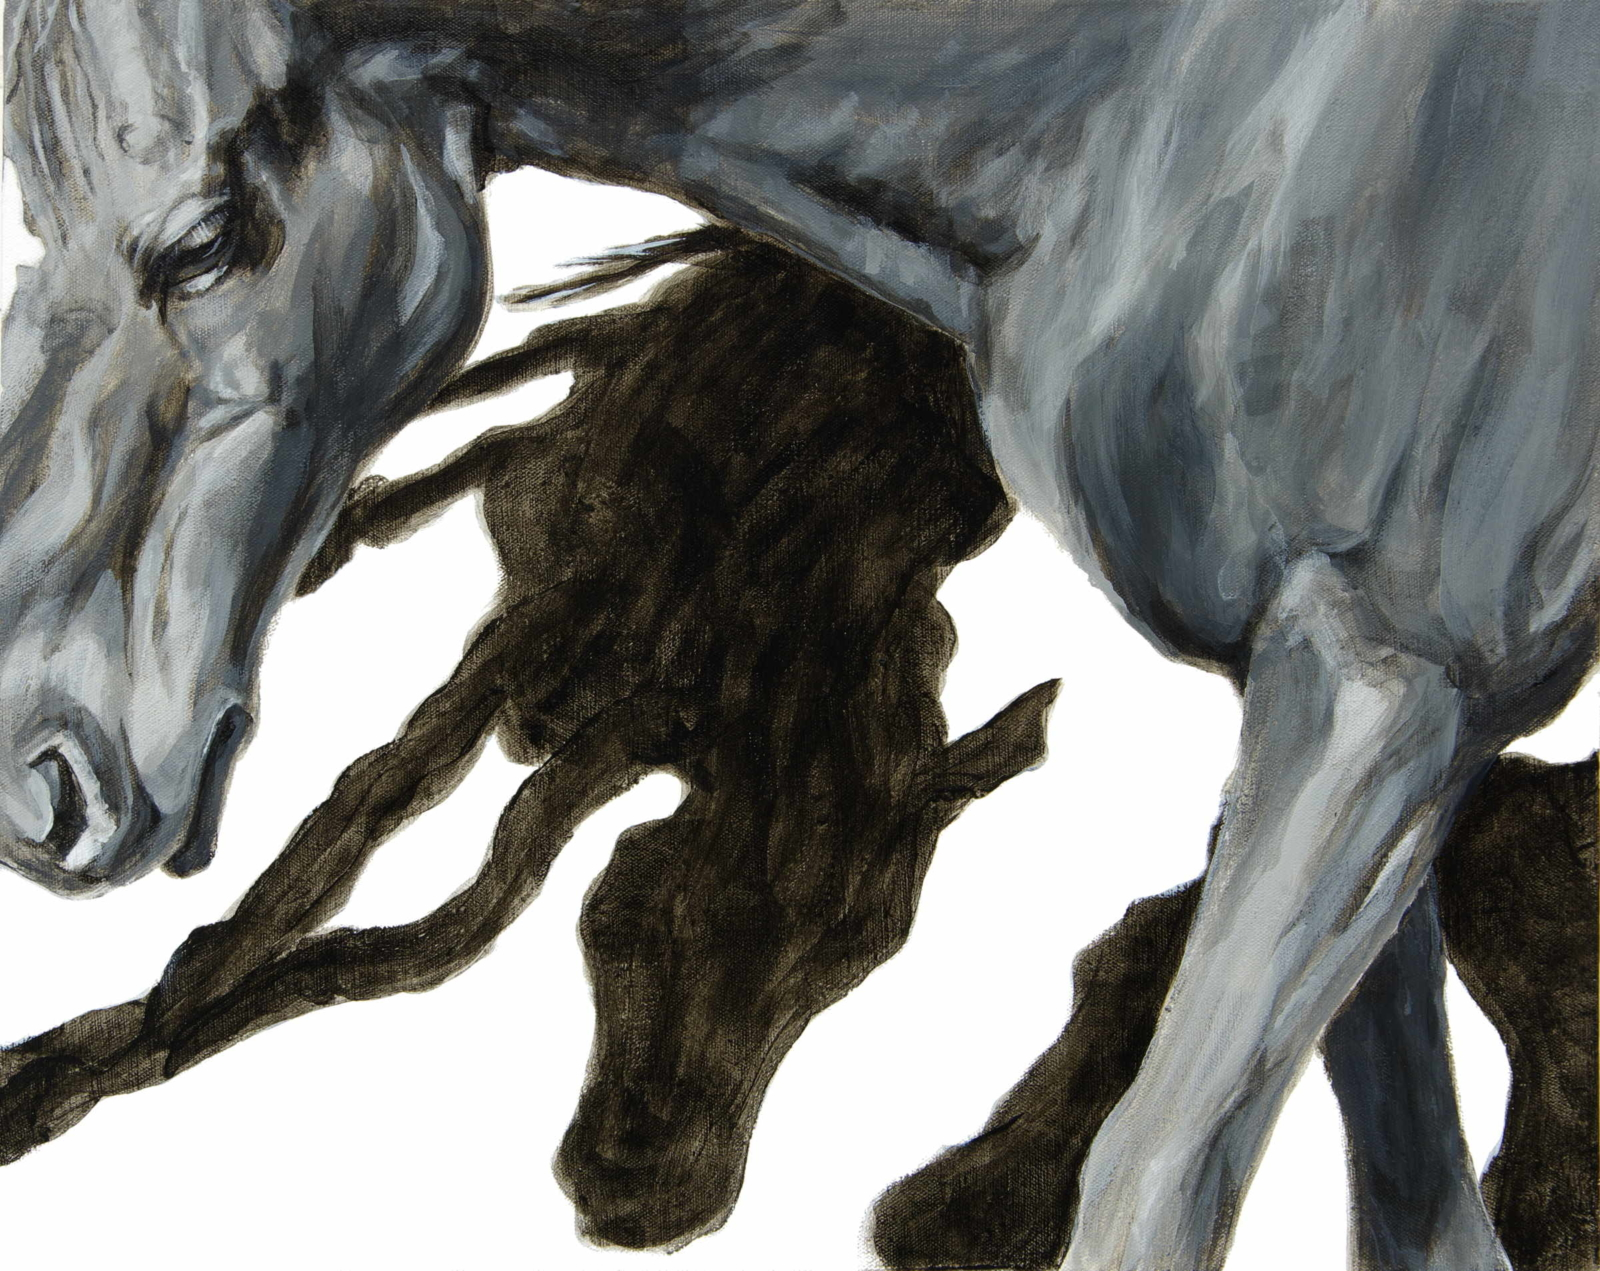 "Horse Shadows, 2019, black and white acrylic on canvas, 16 x 20"", Elizabeth Lisa Petrulis"